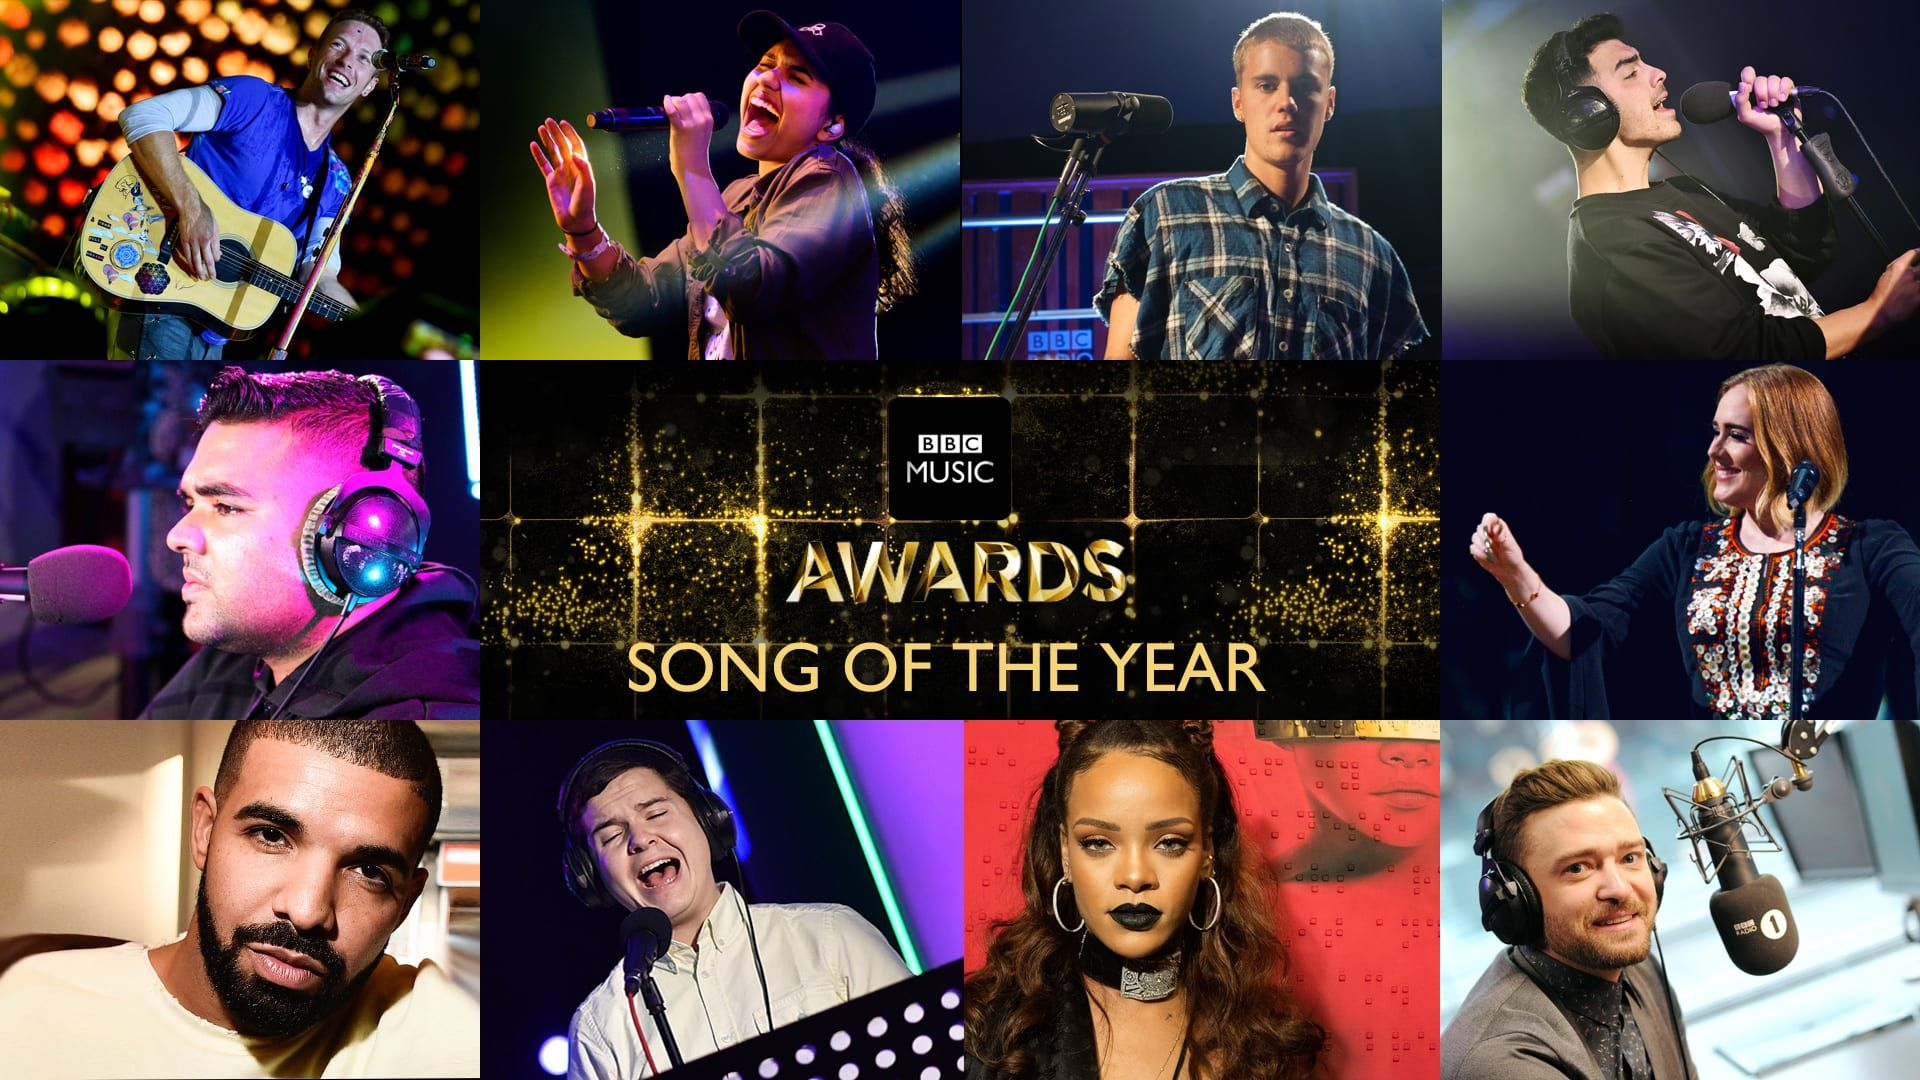 bbc_music_awards_2016_song_of_the_year.jpg